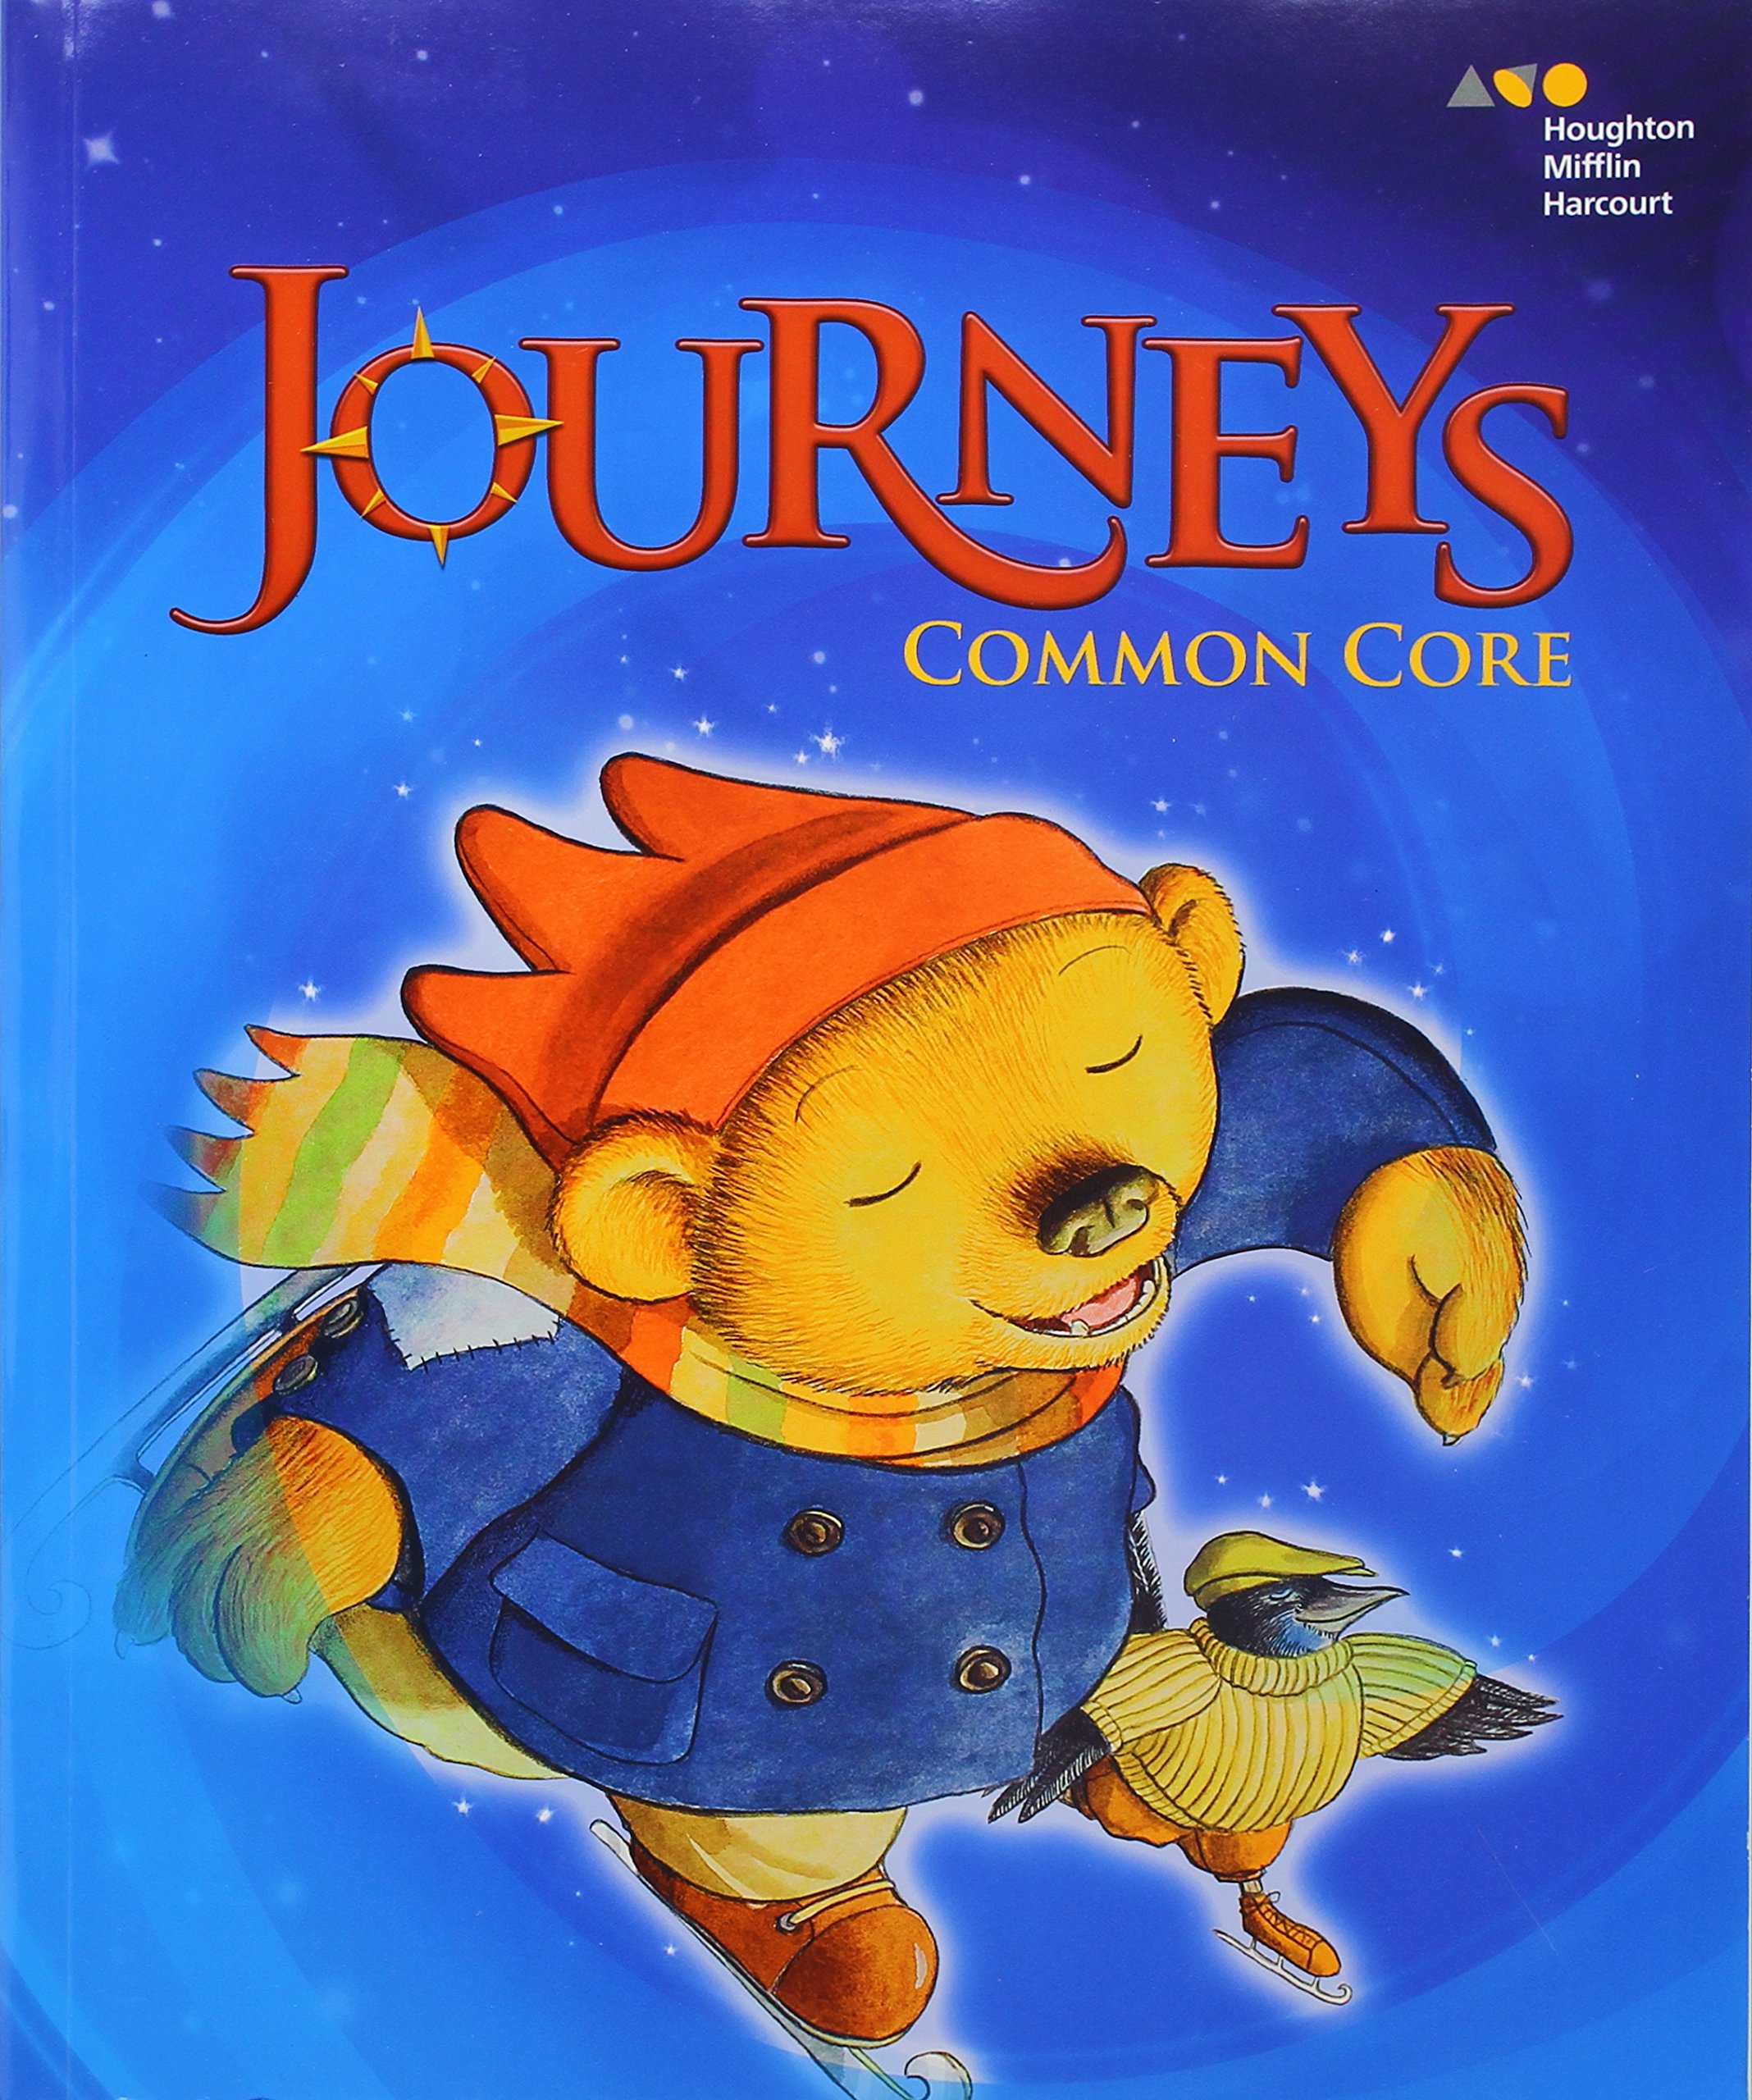 Amazon journeys common core student edition volume 2 grade k amazon journeys common core student edition volume 2 grade k 2014 9780547912295 houghton mifflin harcourt books fandeluxe Image collections